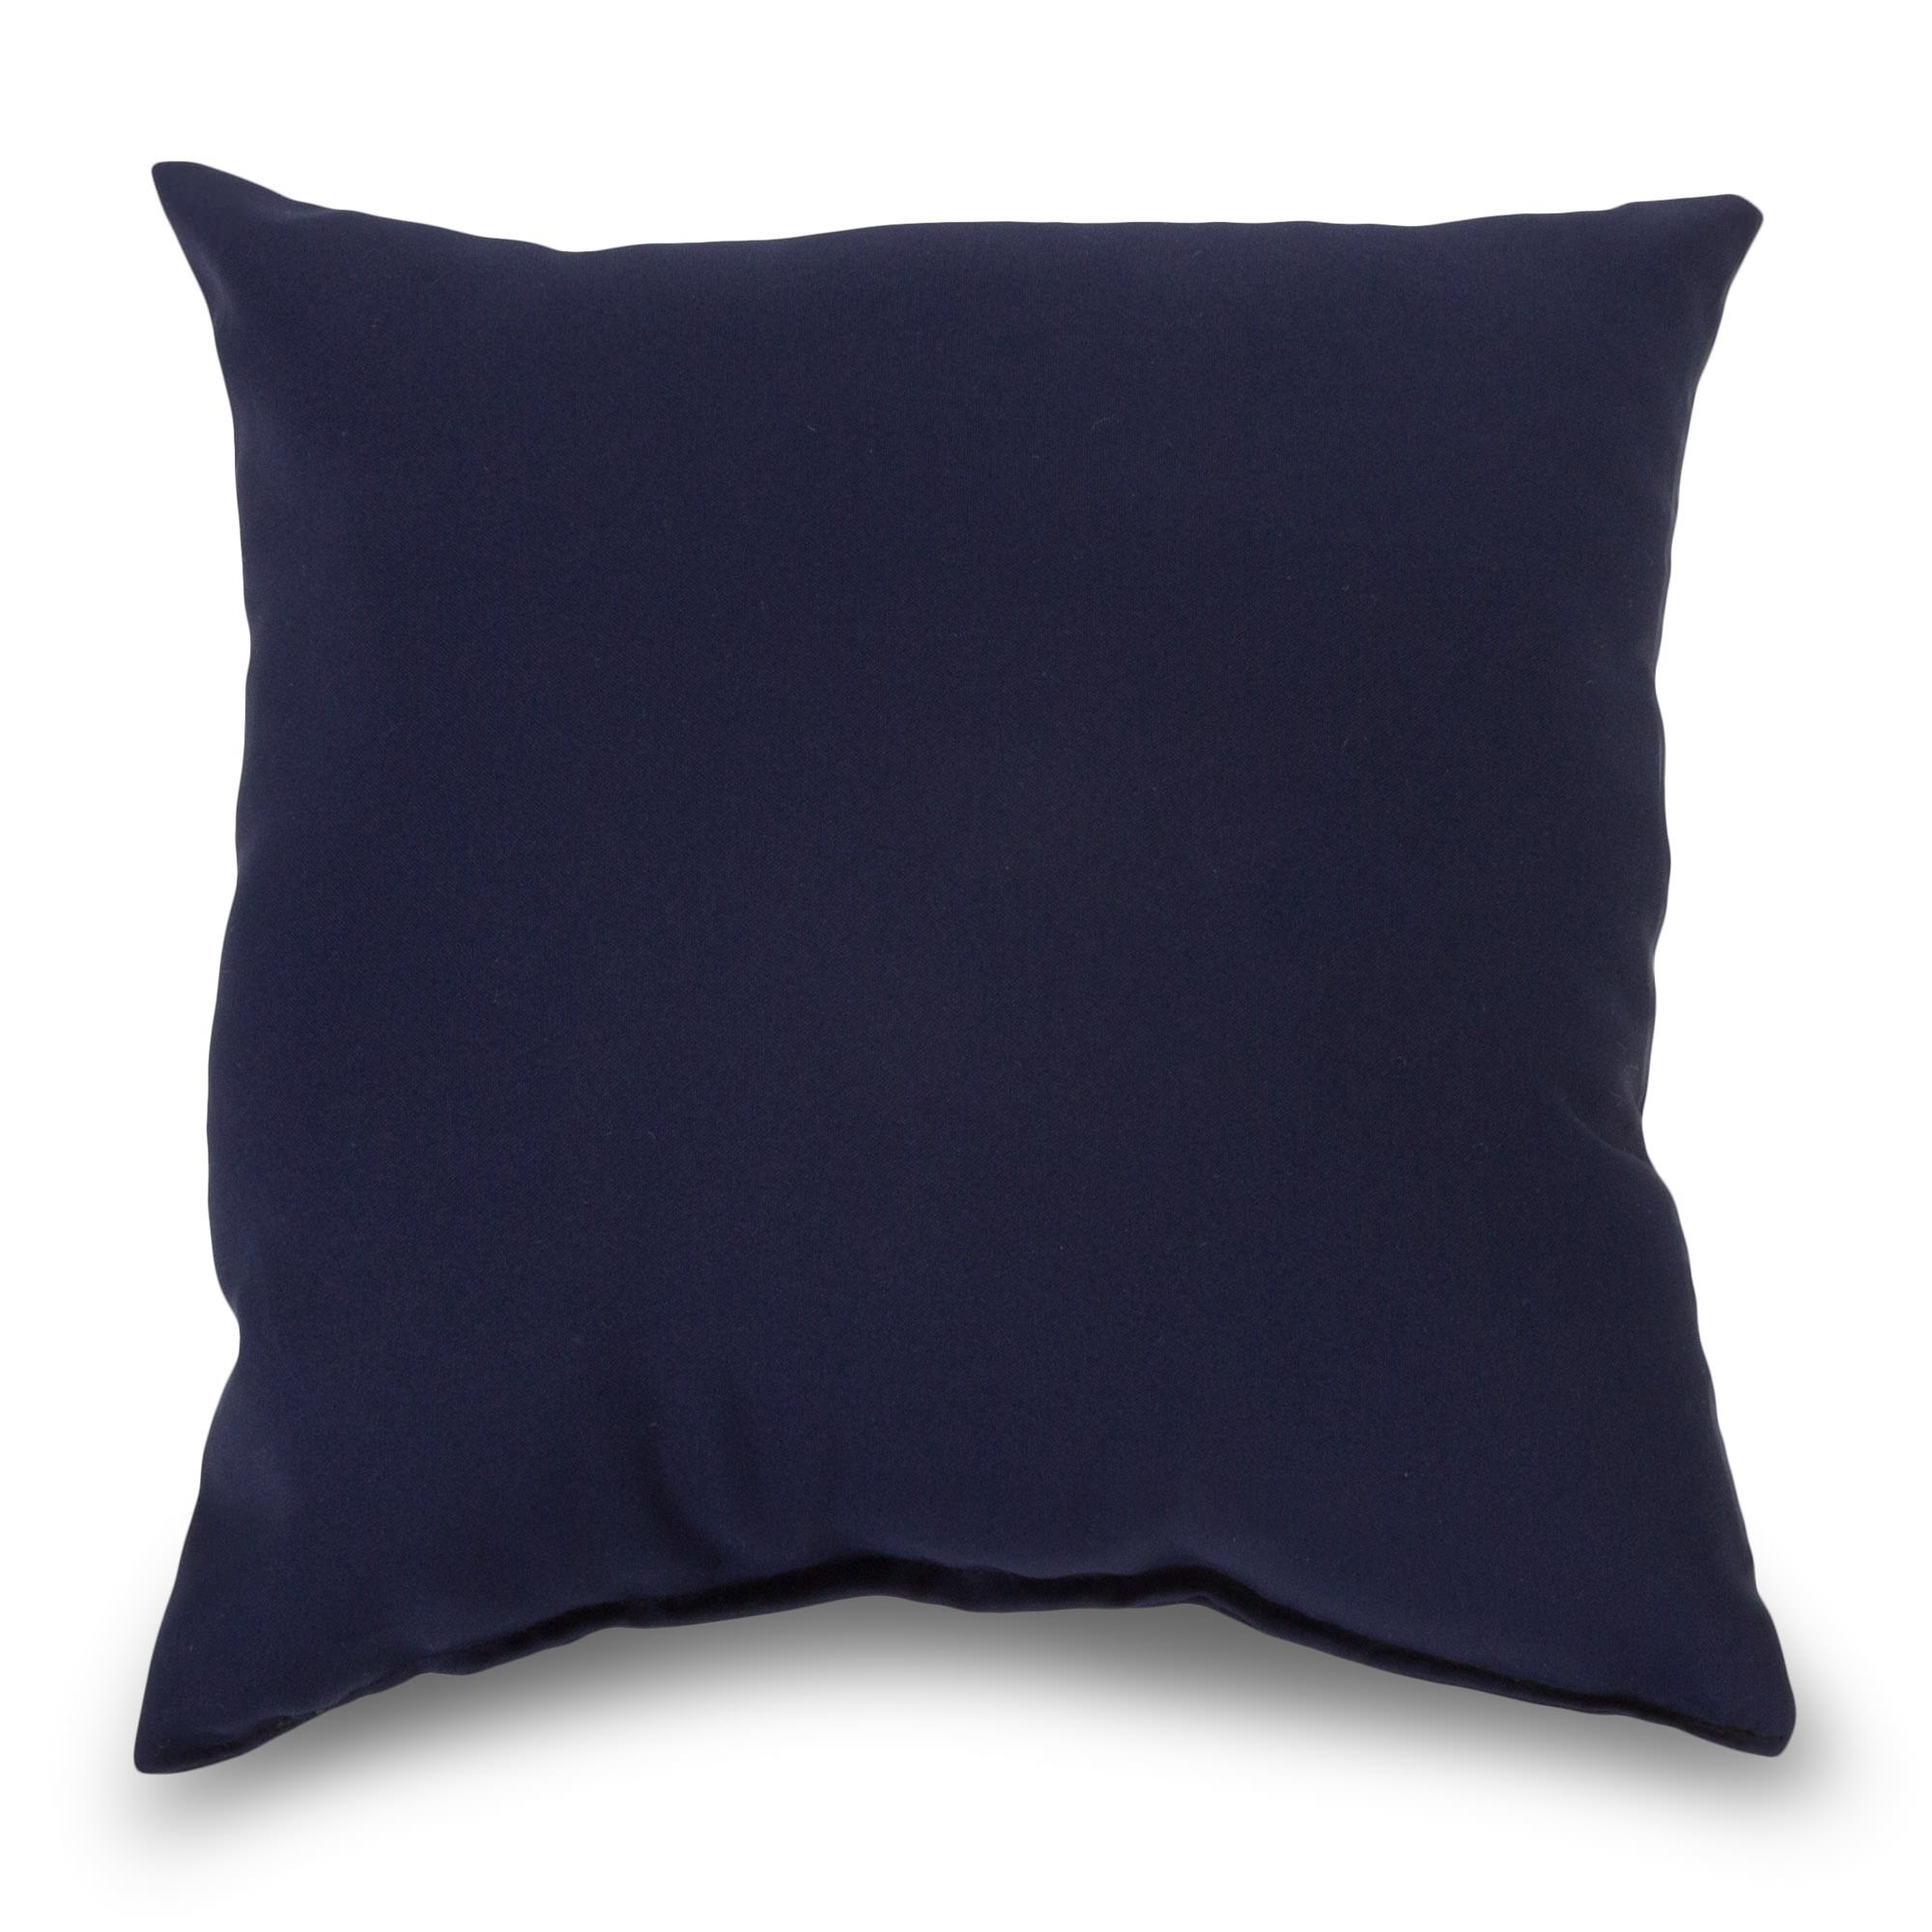 Royal Blue Outdoor Throw Pillows : Shop Royal Blue Outdoor Throw Pillow 19 in. x 10 in. Rectangle/Lumbar - Essentials by DFO ...